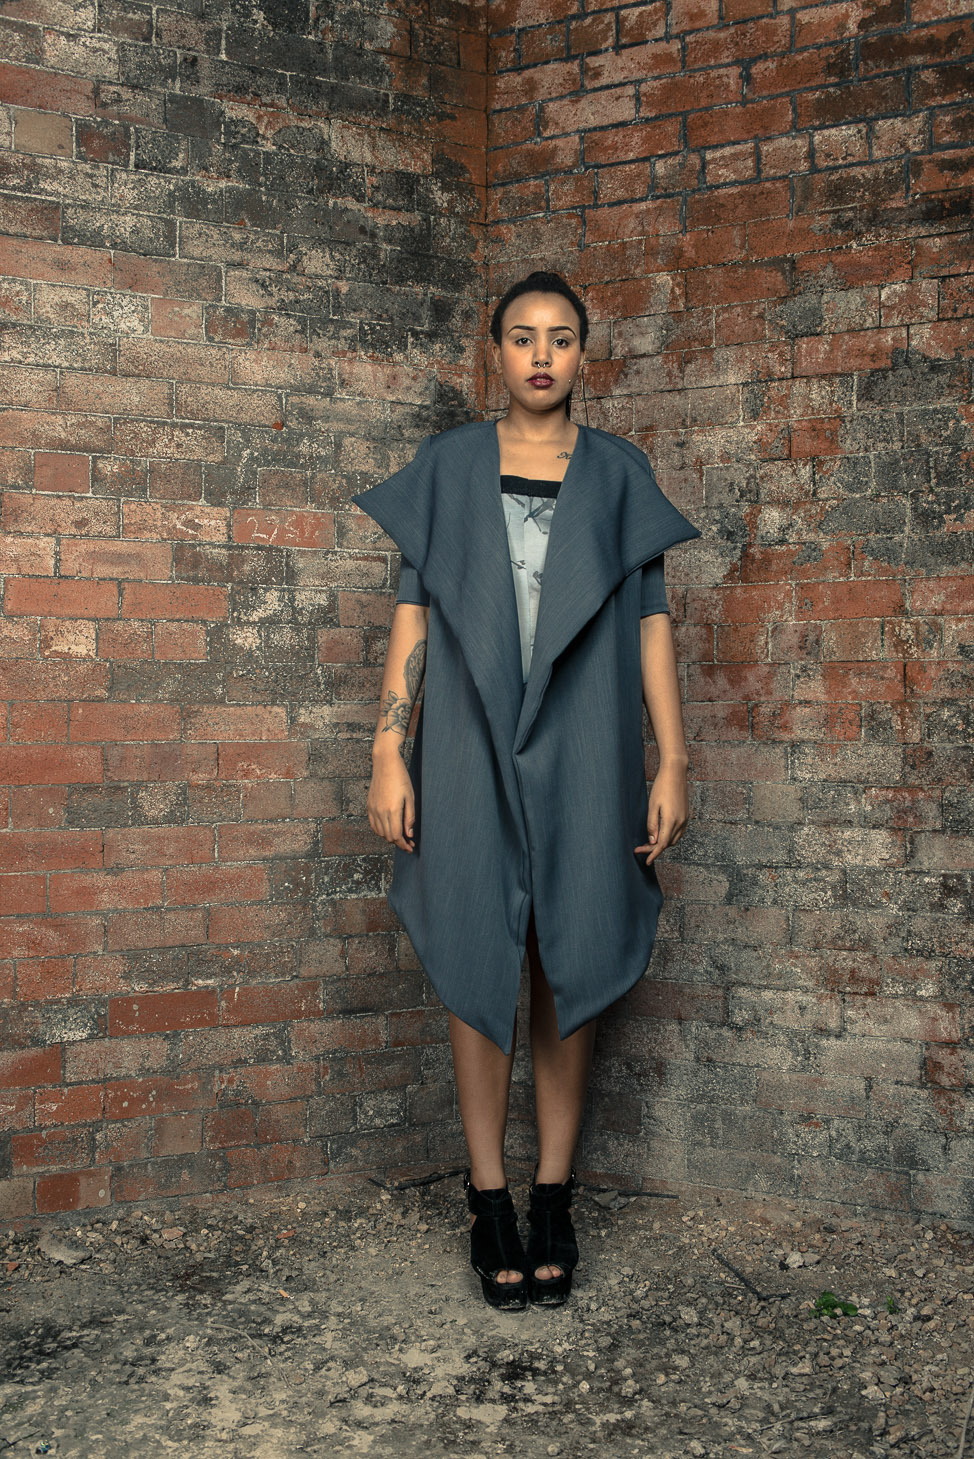 zaramia-ava-zaramiaava-leeds-fashion-designer-ethical-sustainable-tailored-minimalist-dress-jacket-versatile-drape-grey-bodysuit-black-obi-belt-wrap-cowl-styling-womenswear-models-photoshoot-24